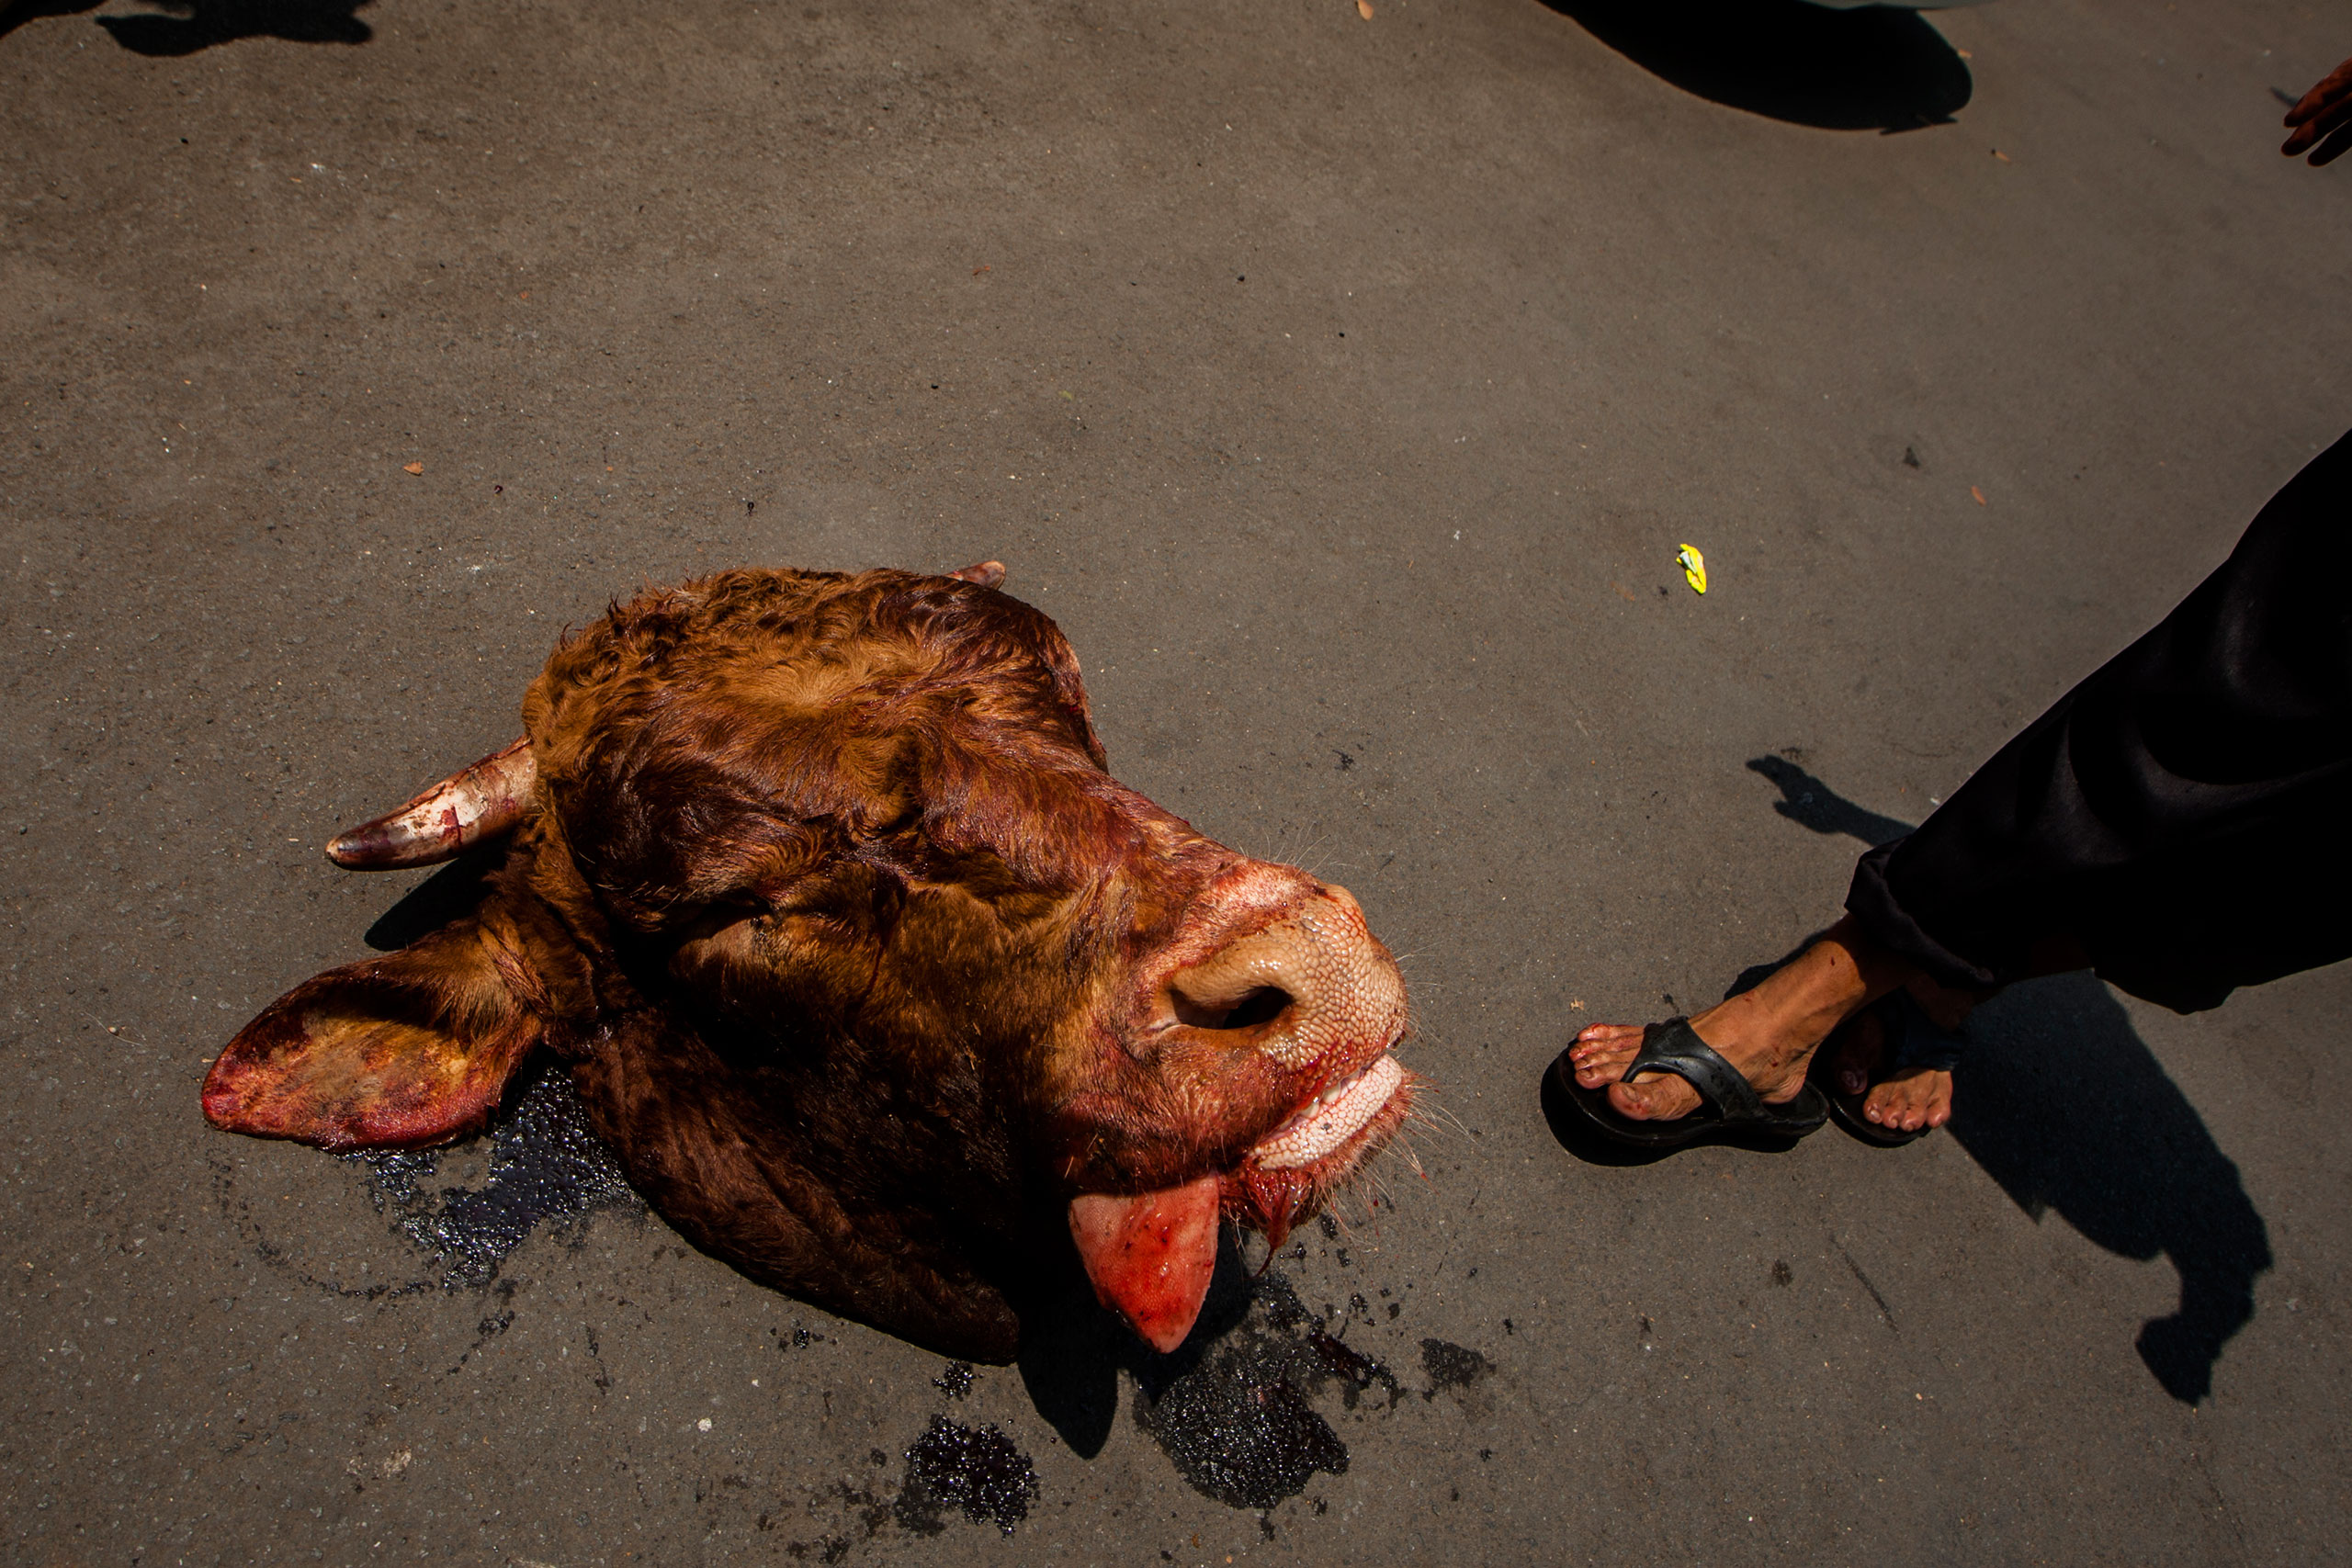 The head of a cow after slaughter is seen during celebrations of Eid al-Adha at Sunda Kelapa Mosque in Jakarta, Indonesia, Sept. 24, 2015